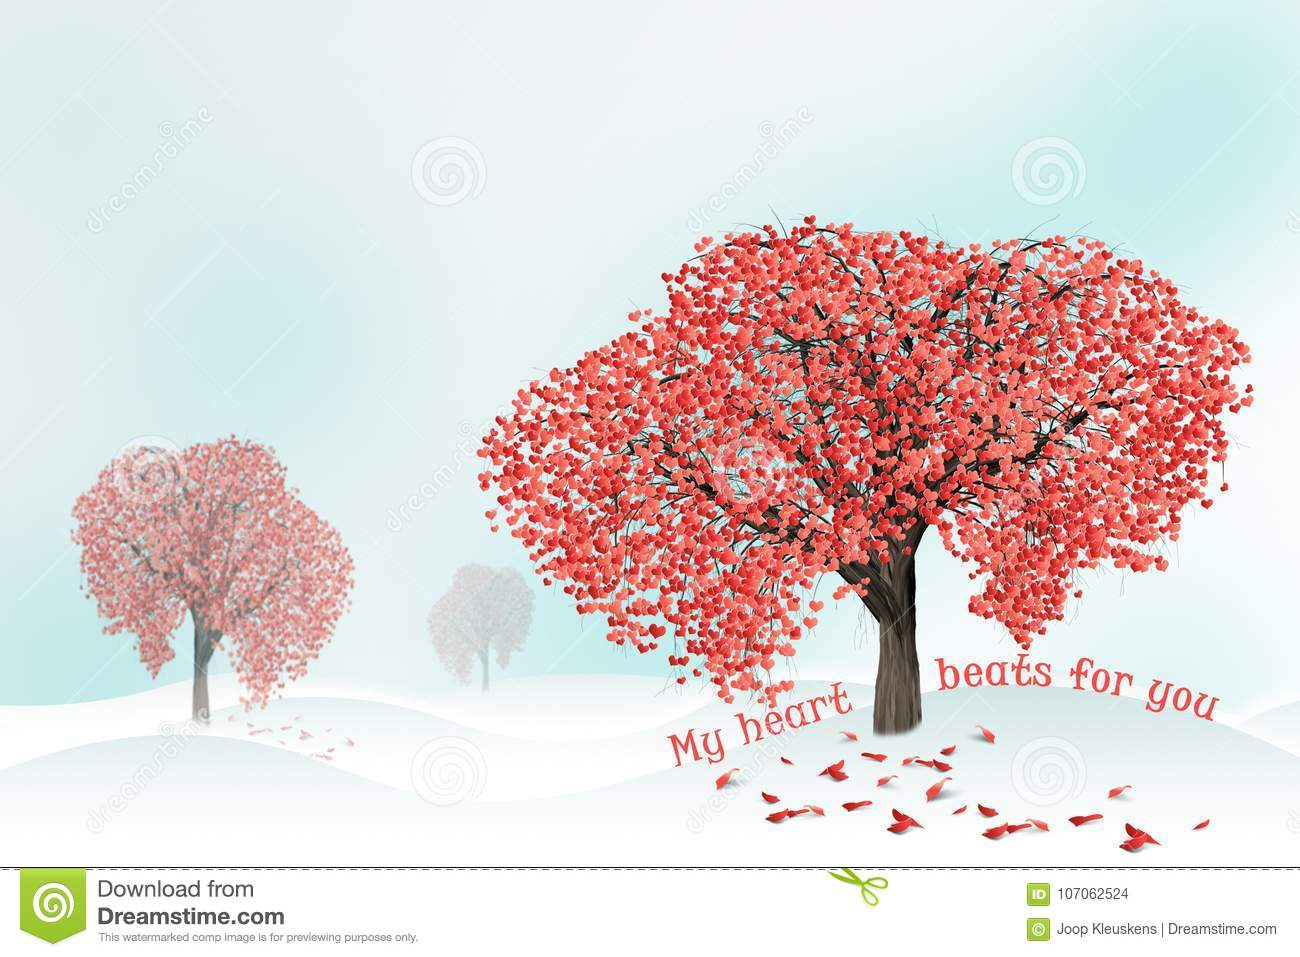 Love tree full of heart shaped leaves stock illustration download comp mightylinksfo